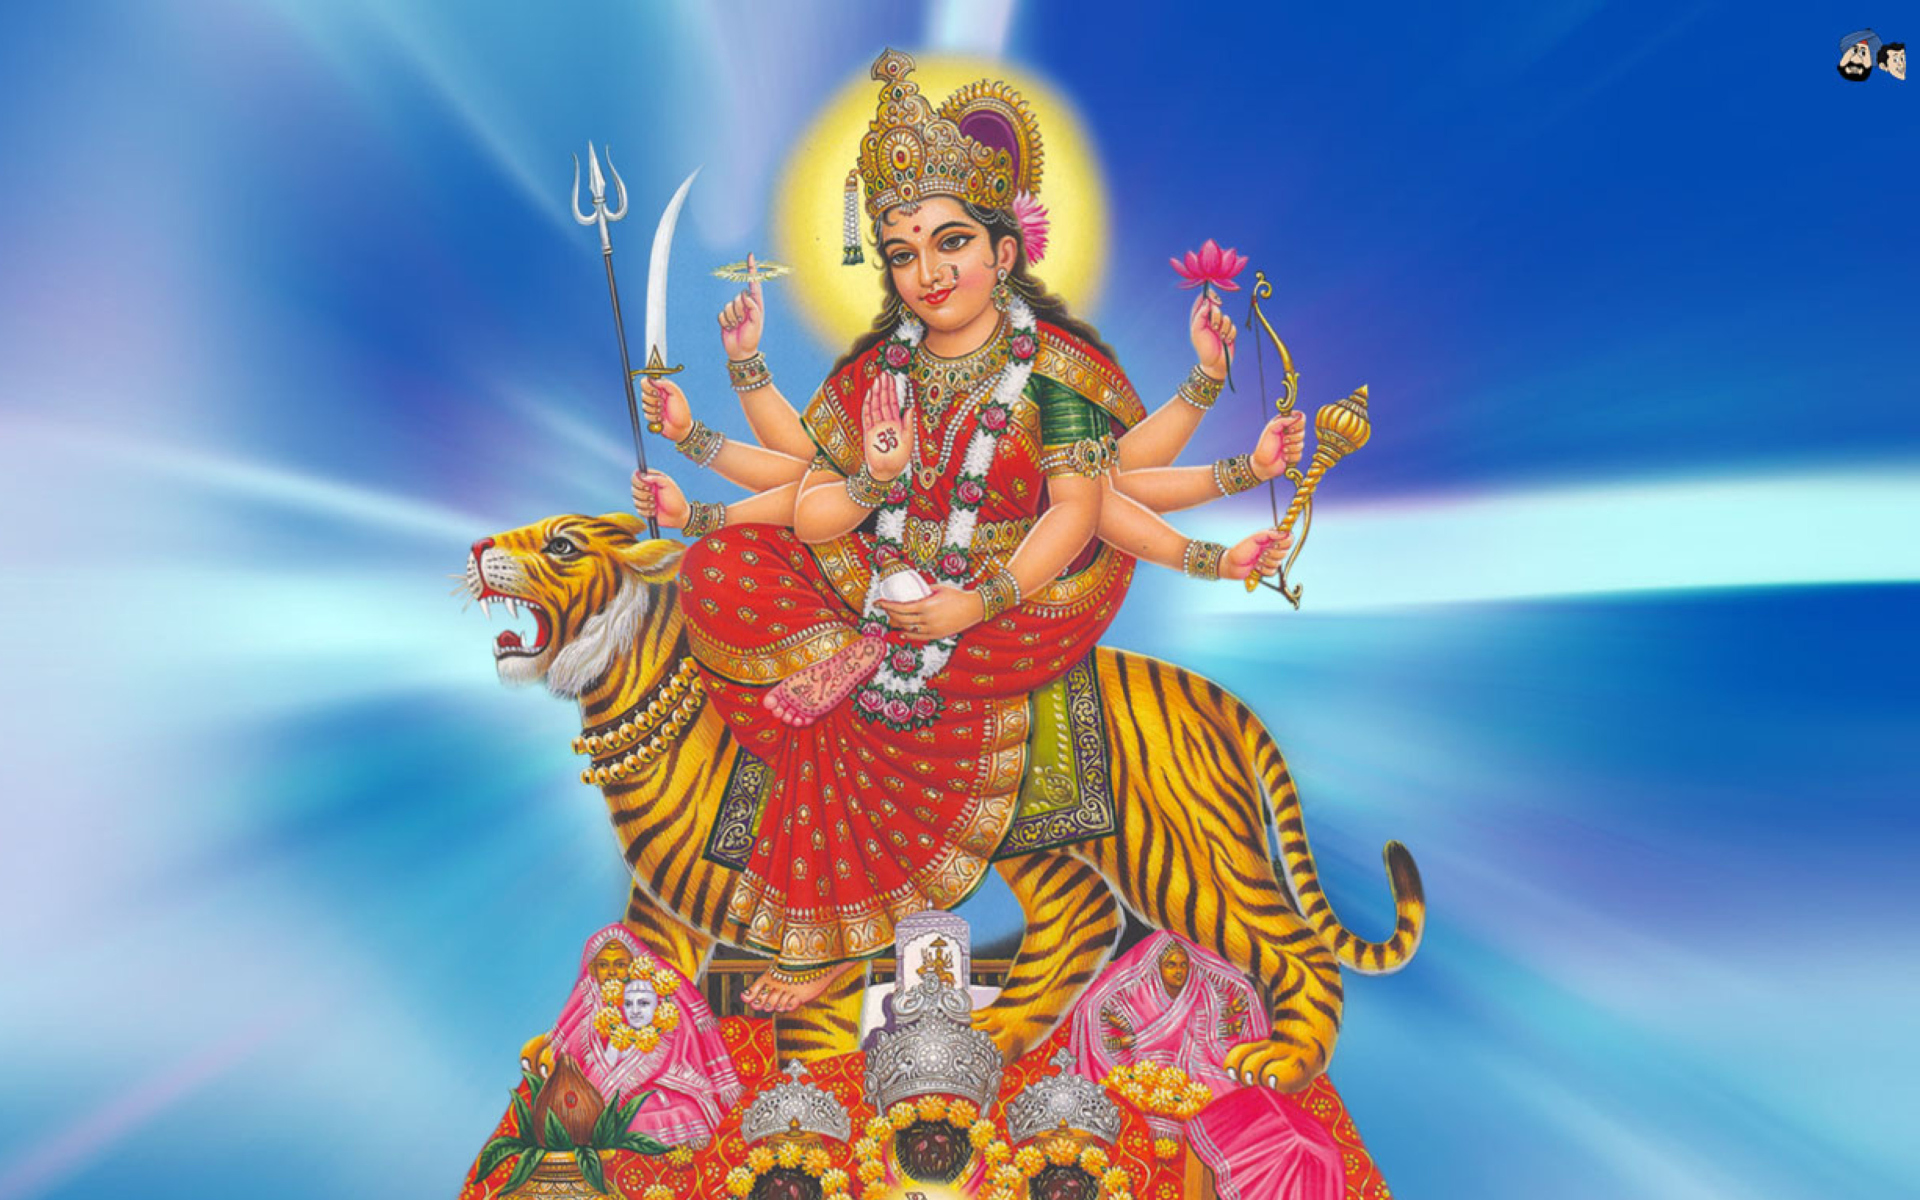 Hindu Goddess image hd for pc